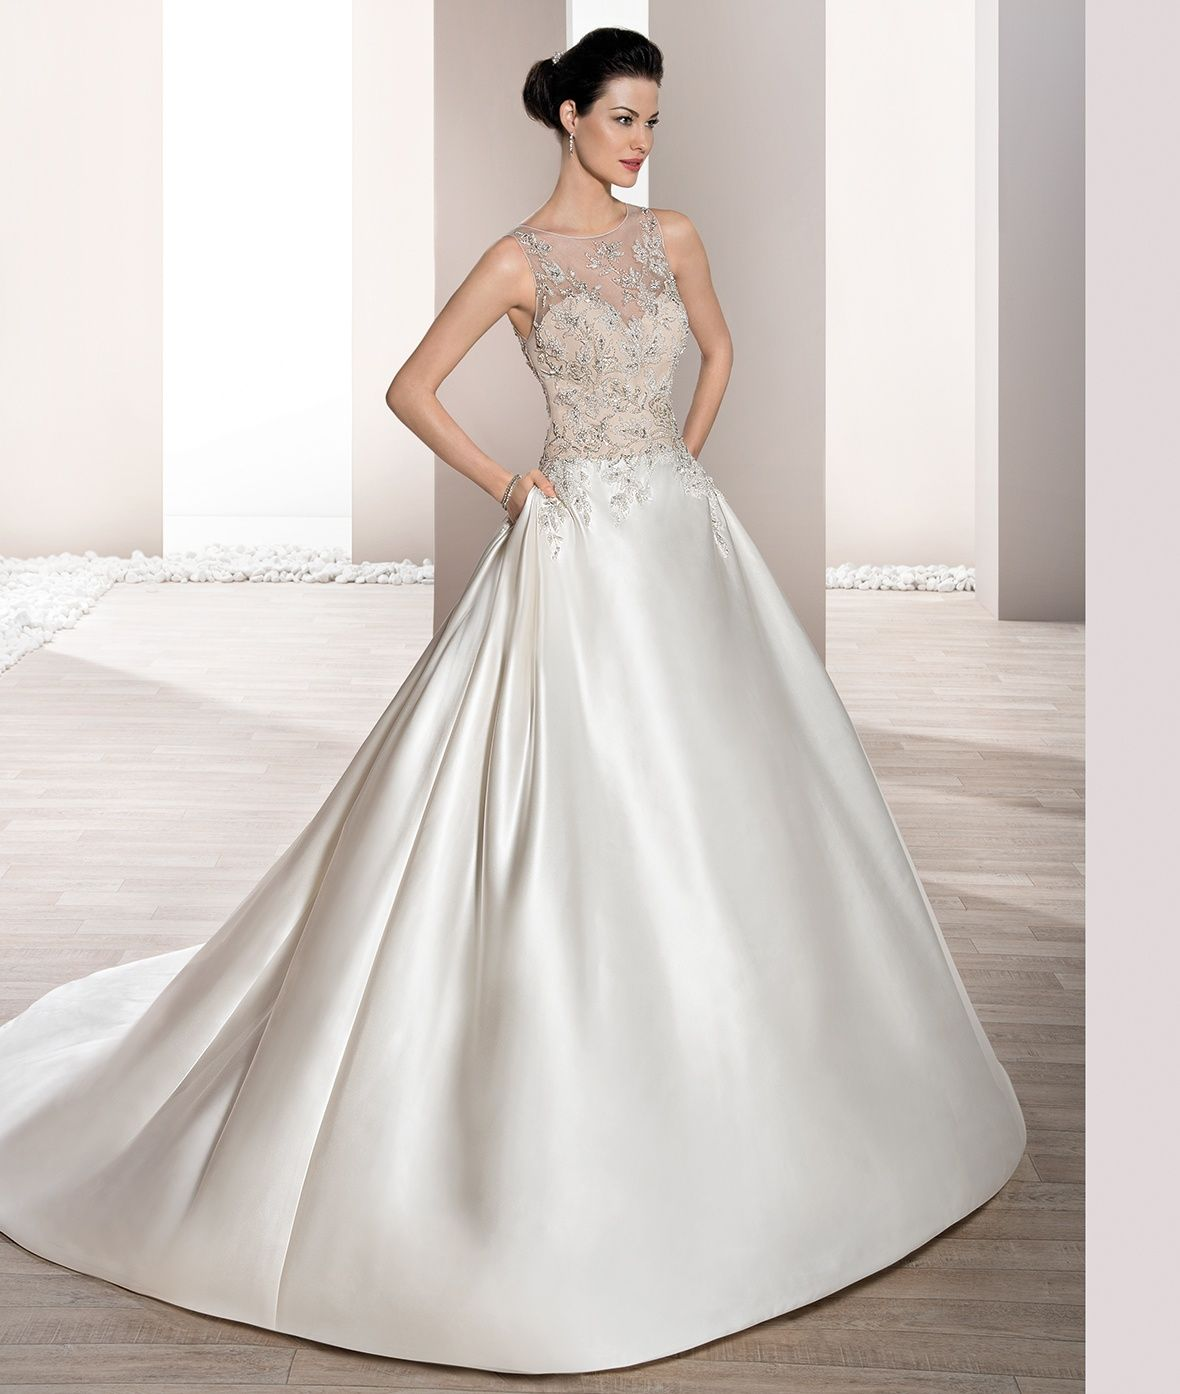 Timeless Wedding Gown: Bridal Dresses Bold And Timeless. (With